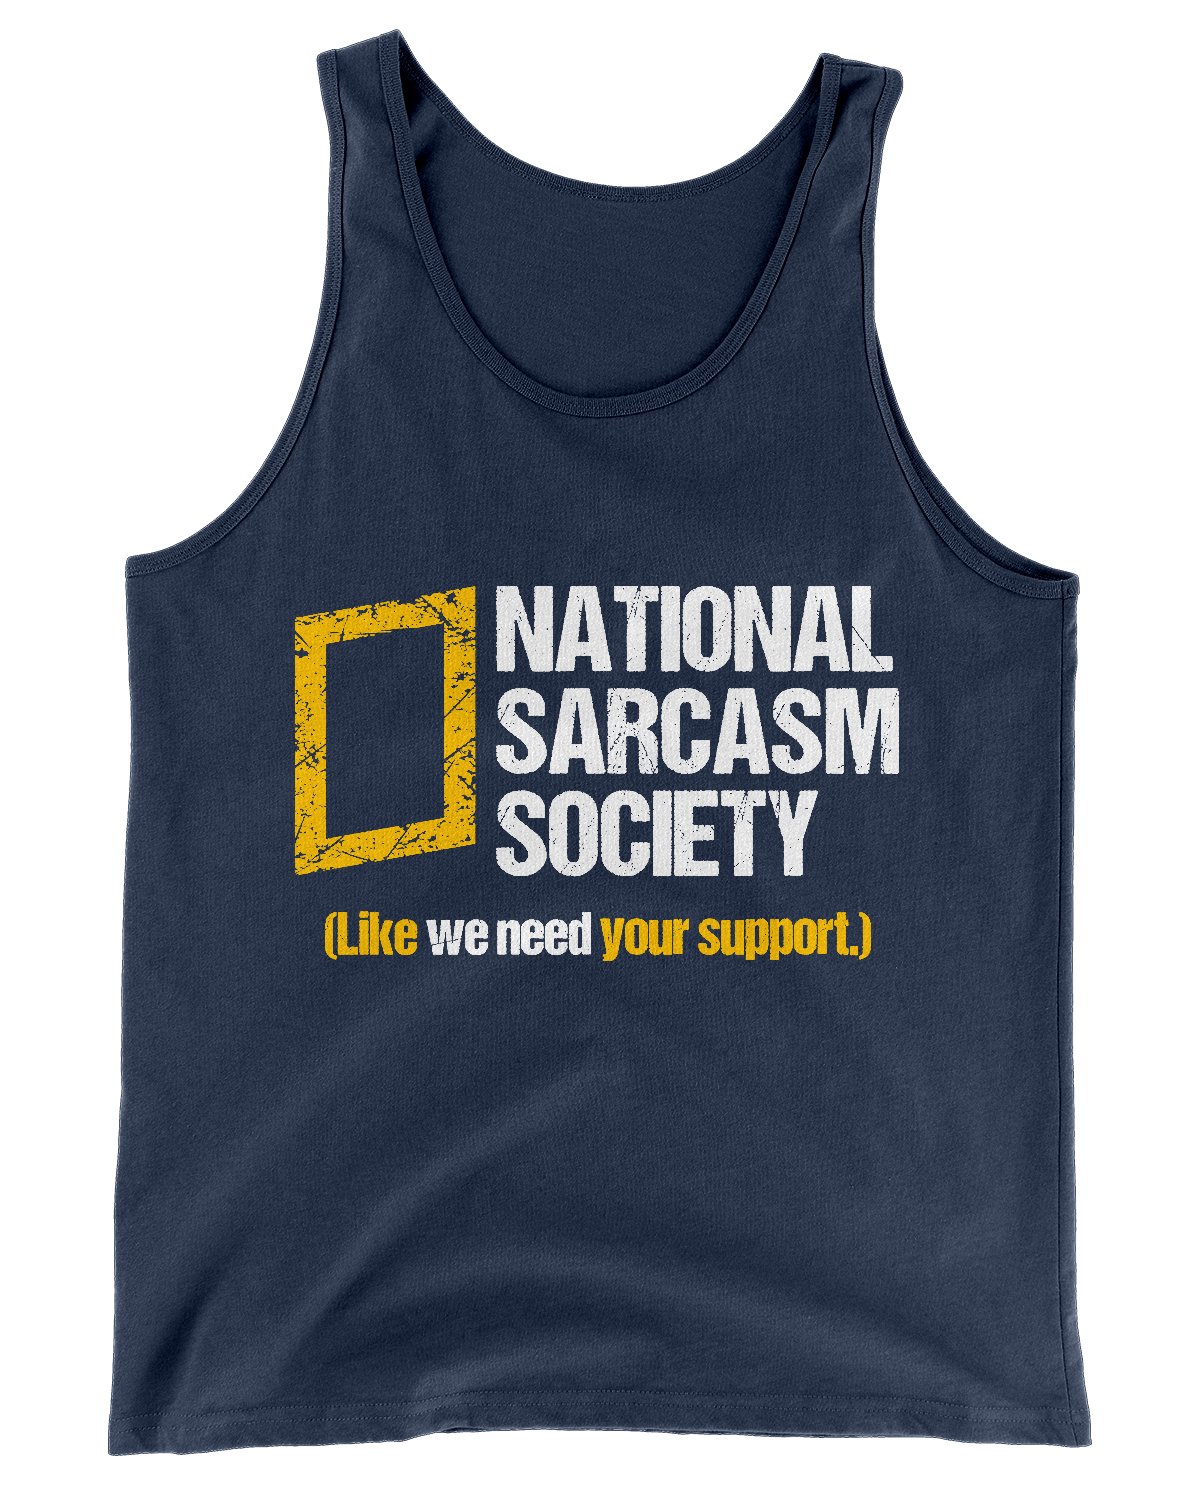 National Sarcasm Society Tank